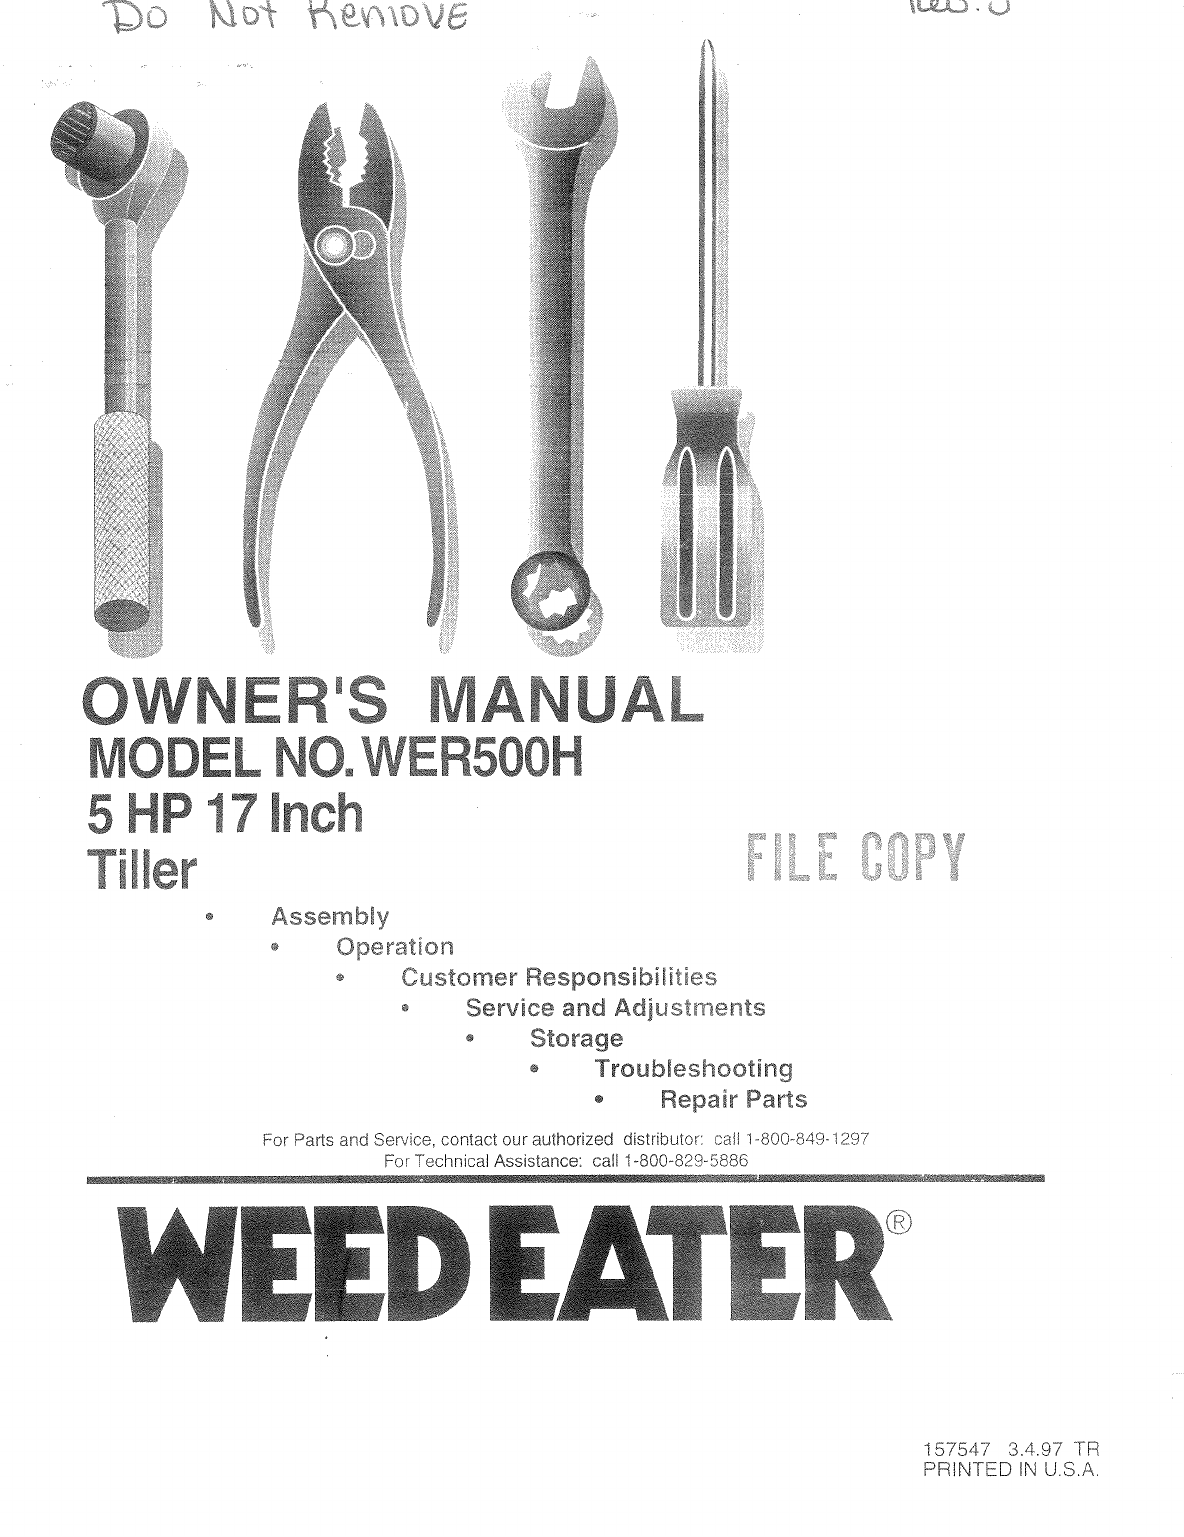 Weed Eater Manual Rte115c Pl200 Parts List And Diagram Type 1 Ereplacementparts Troubleshooting Problems With Starting Eaters Home